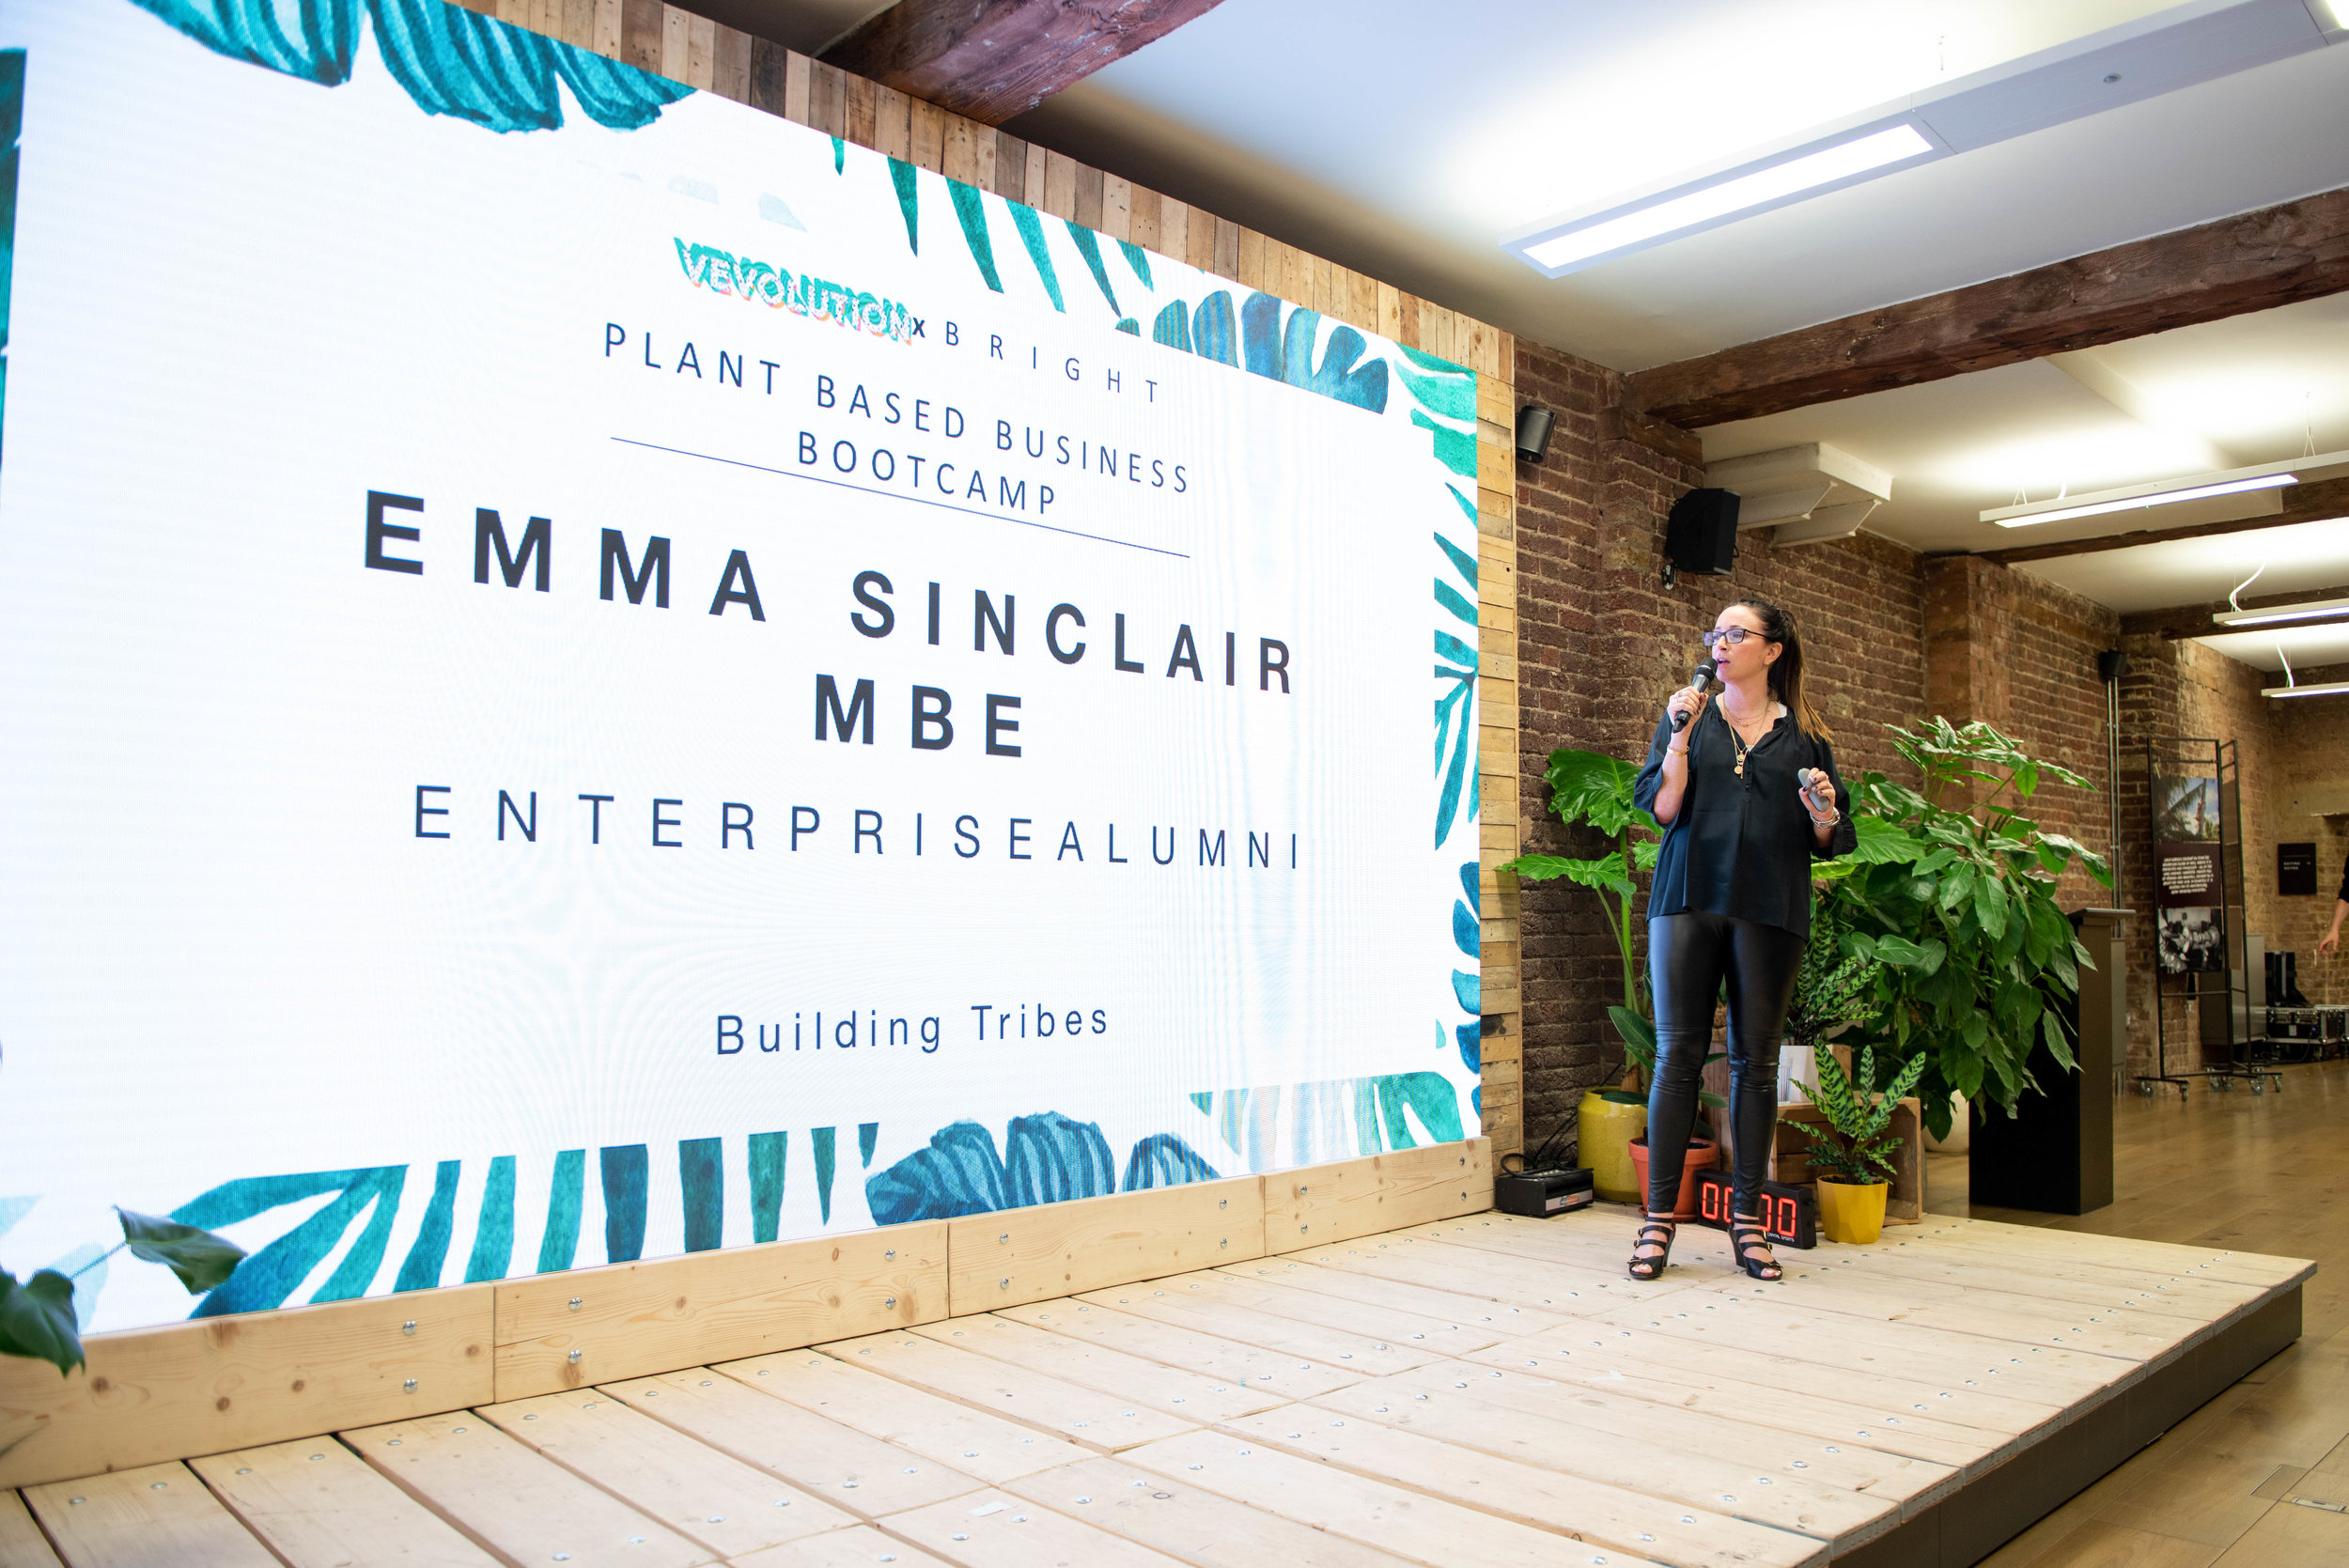 Emma Sinclair at Plant Based Business Bootcamp 2018